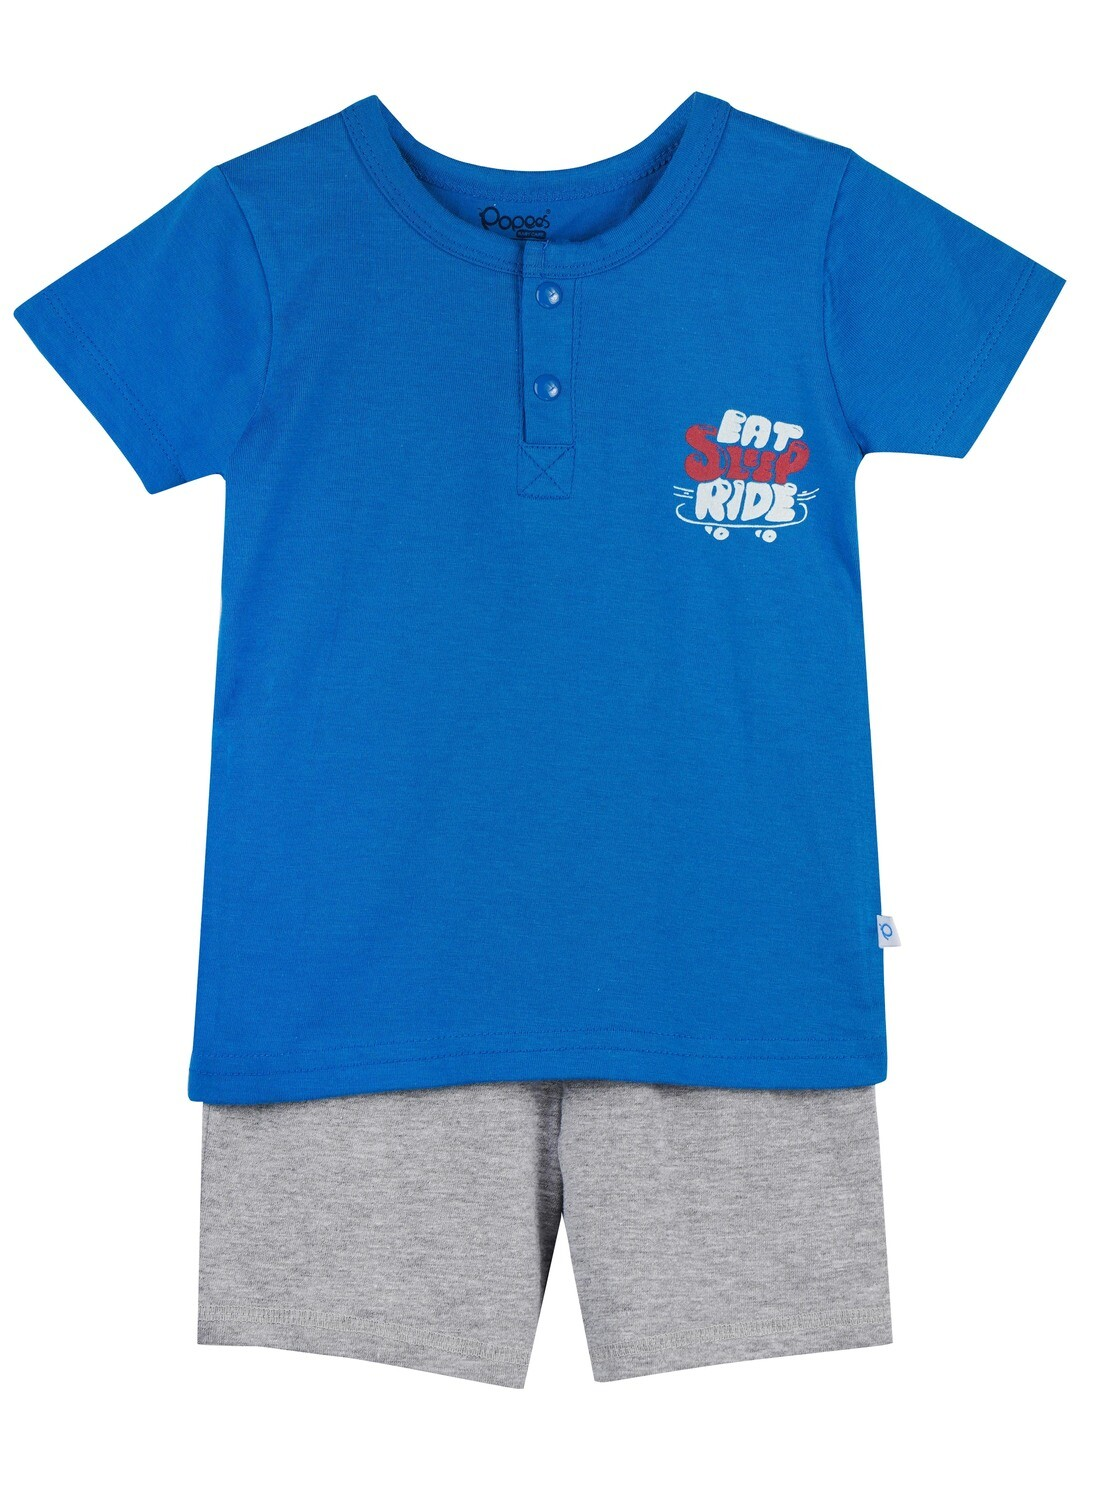 LENIN INDIGO BUNTING Half Sleeve Front Half Open Top and Trouser SINGLE JERSEY for Baby Boys